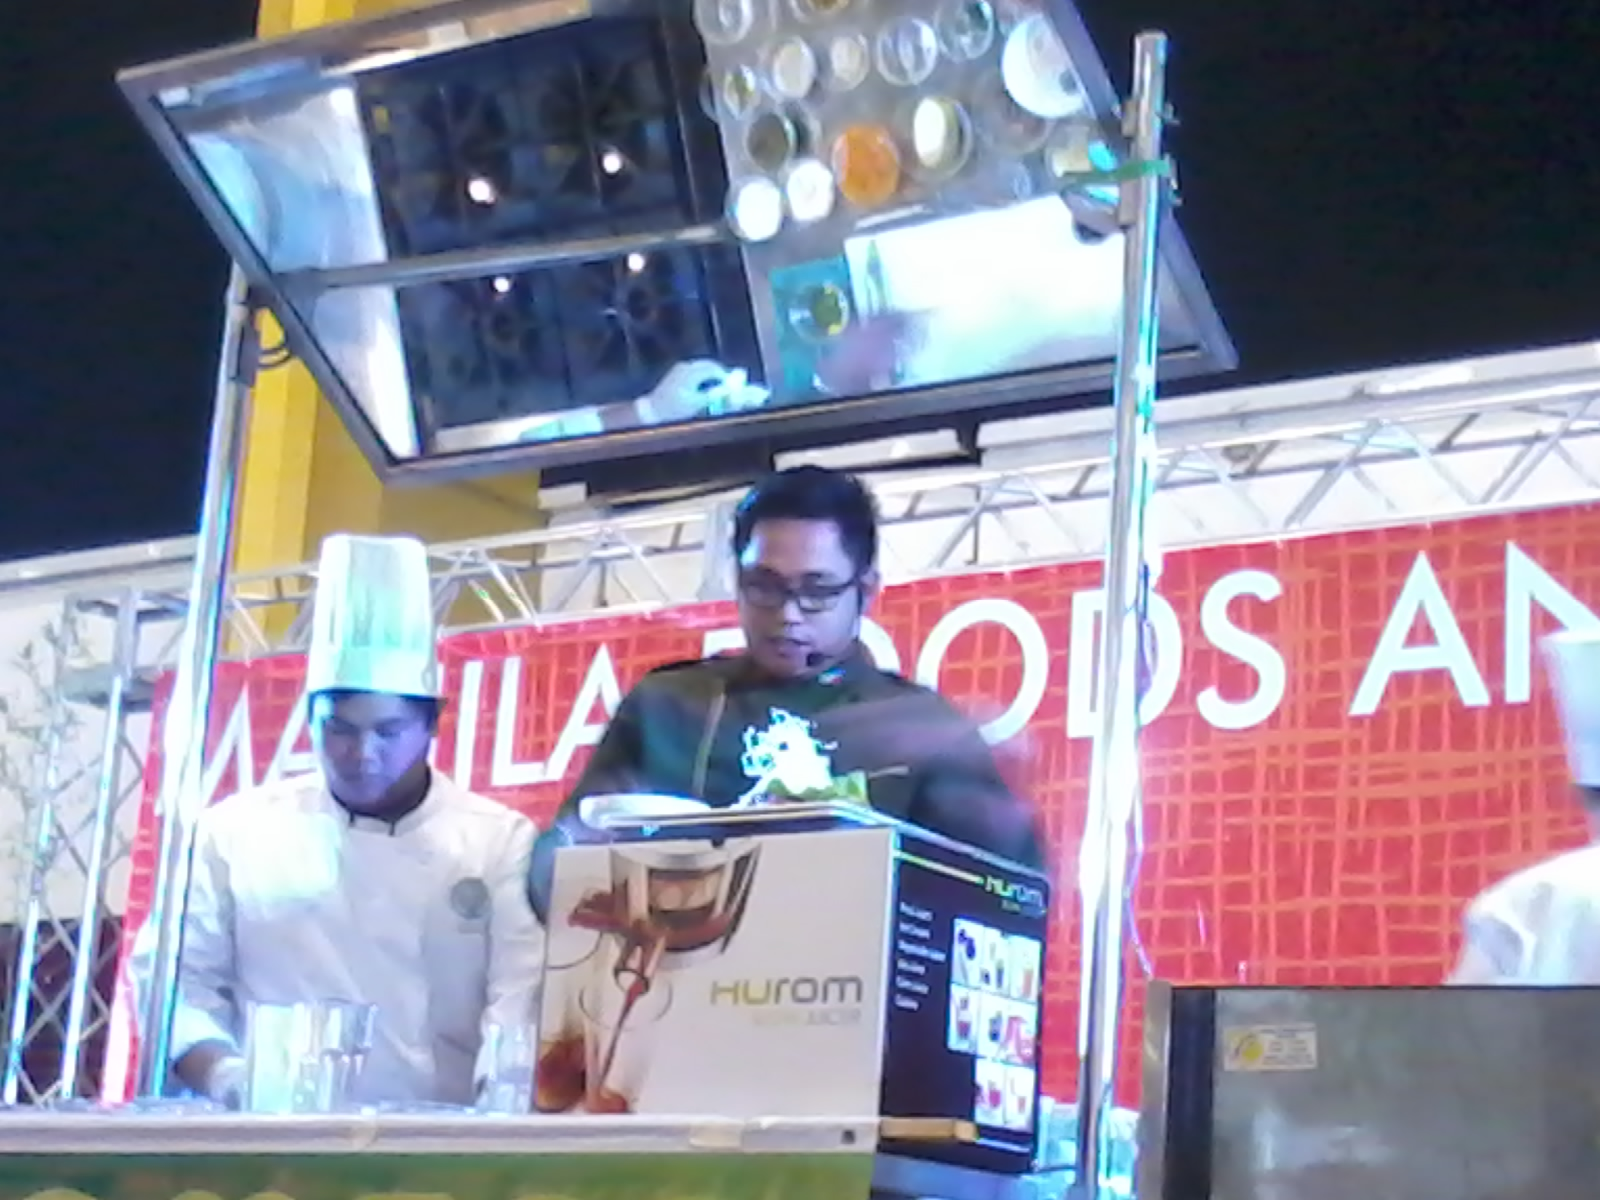 Hurom Slow Juicer Demonstration : HUROM SLOW JUICER DEMO BY CHEF KEL ZAGUIRRE AT THE MAFBEX 2012 Security Blanket